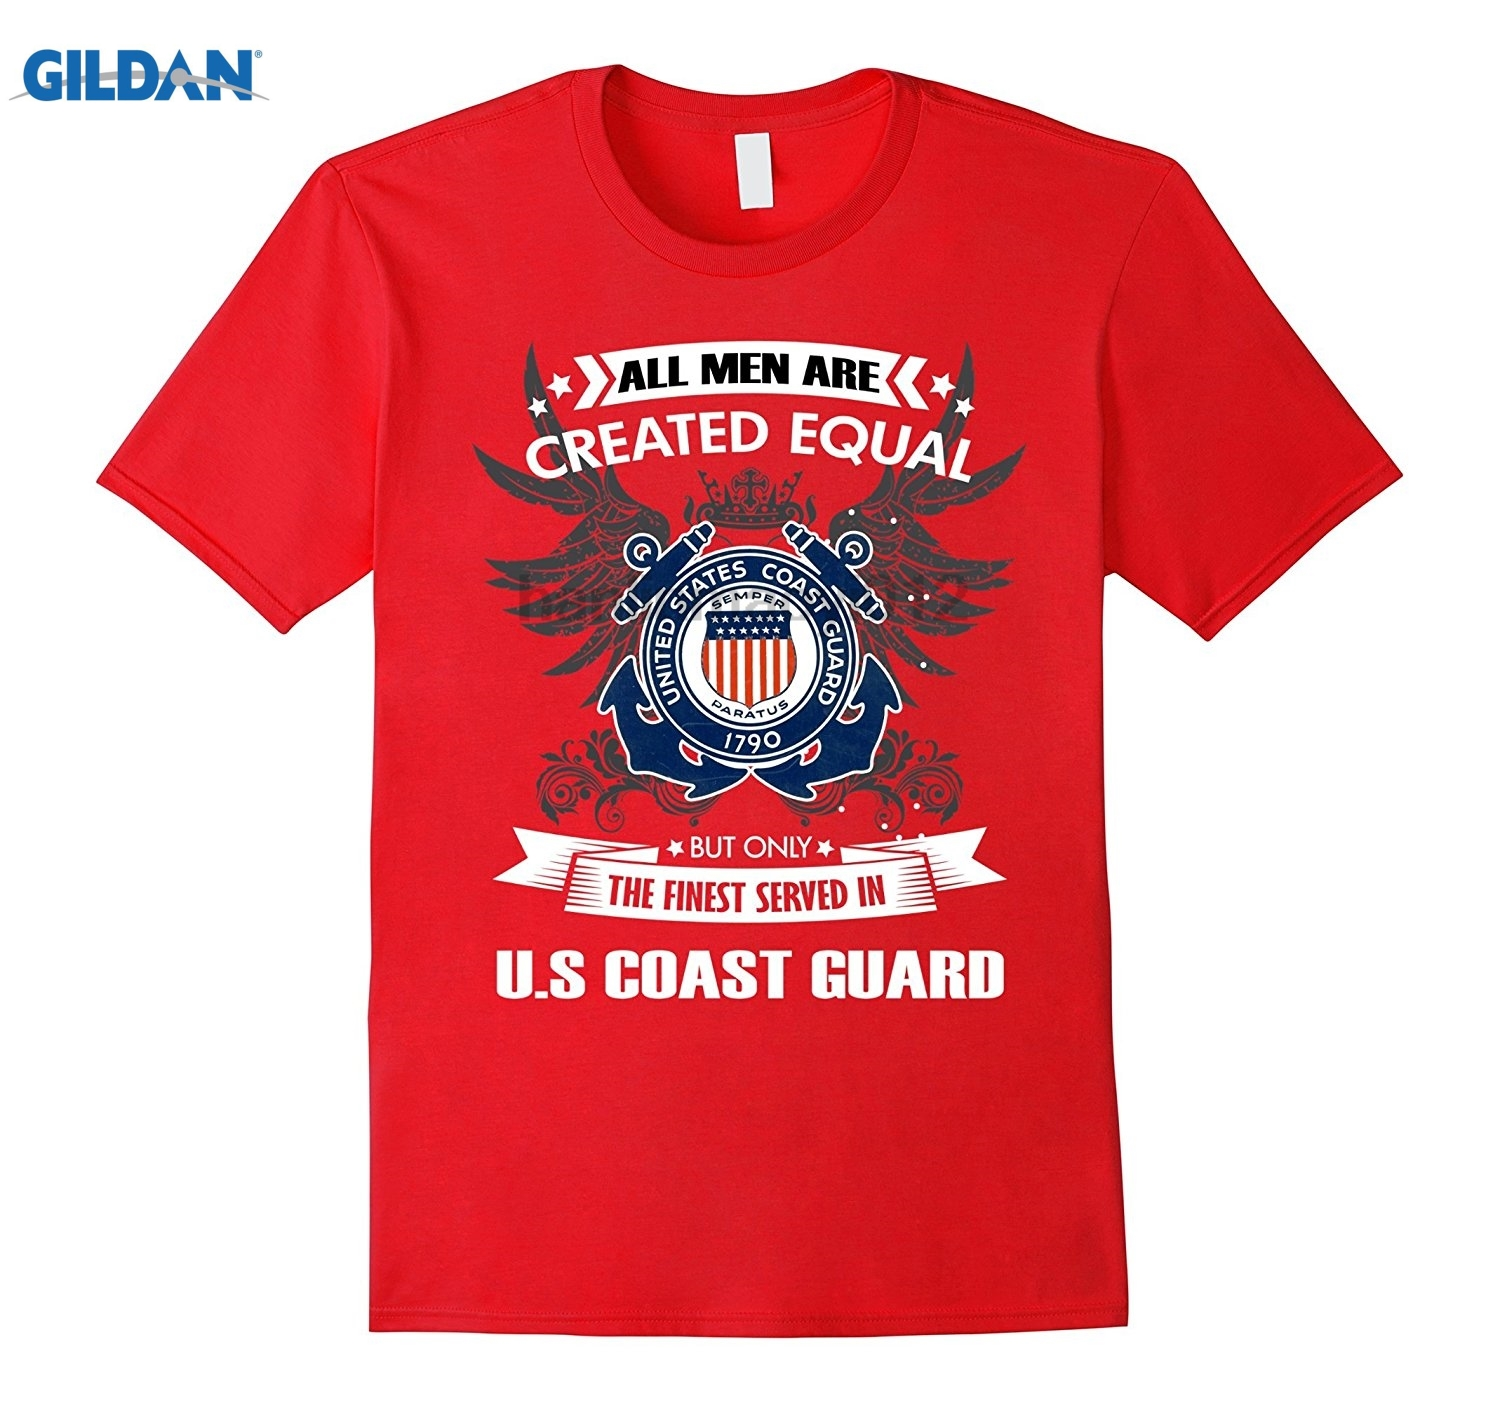 GILDAN U.S Coast Guard T-Shirt sunglasses women T-shirt